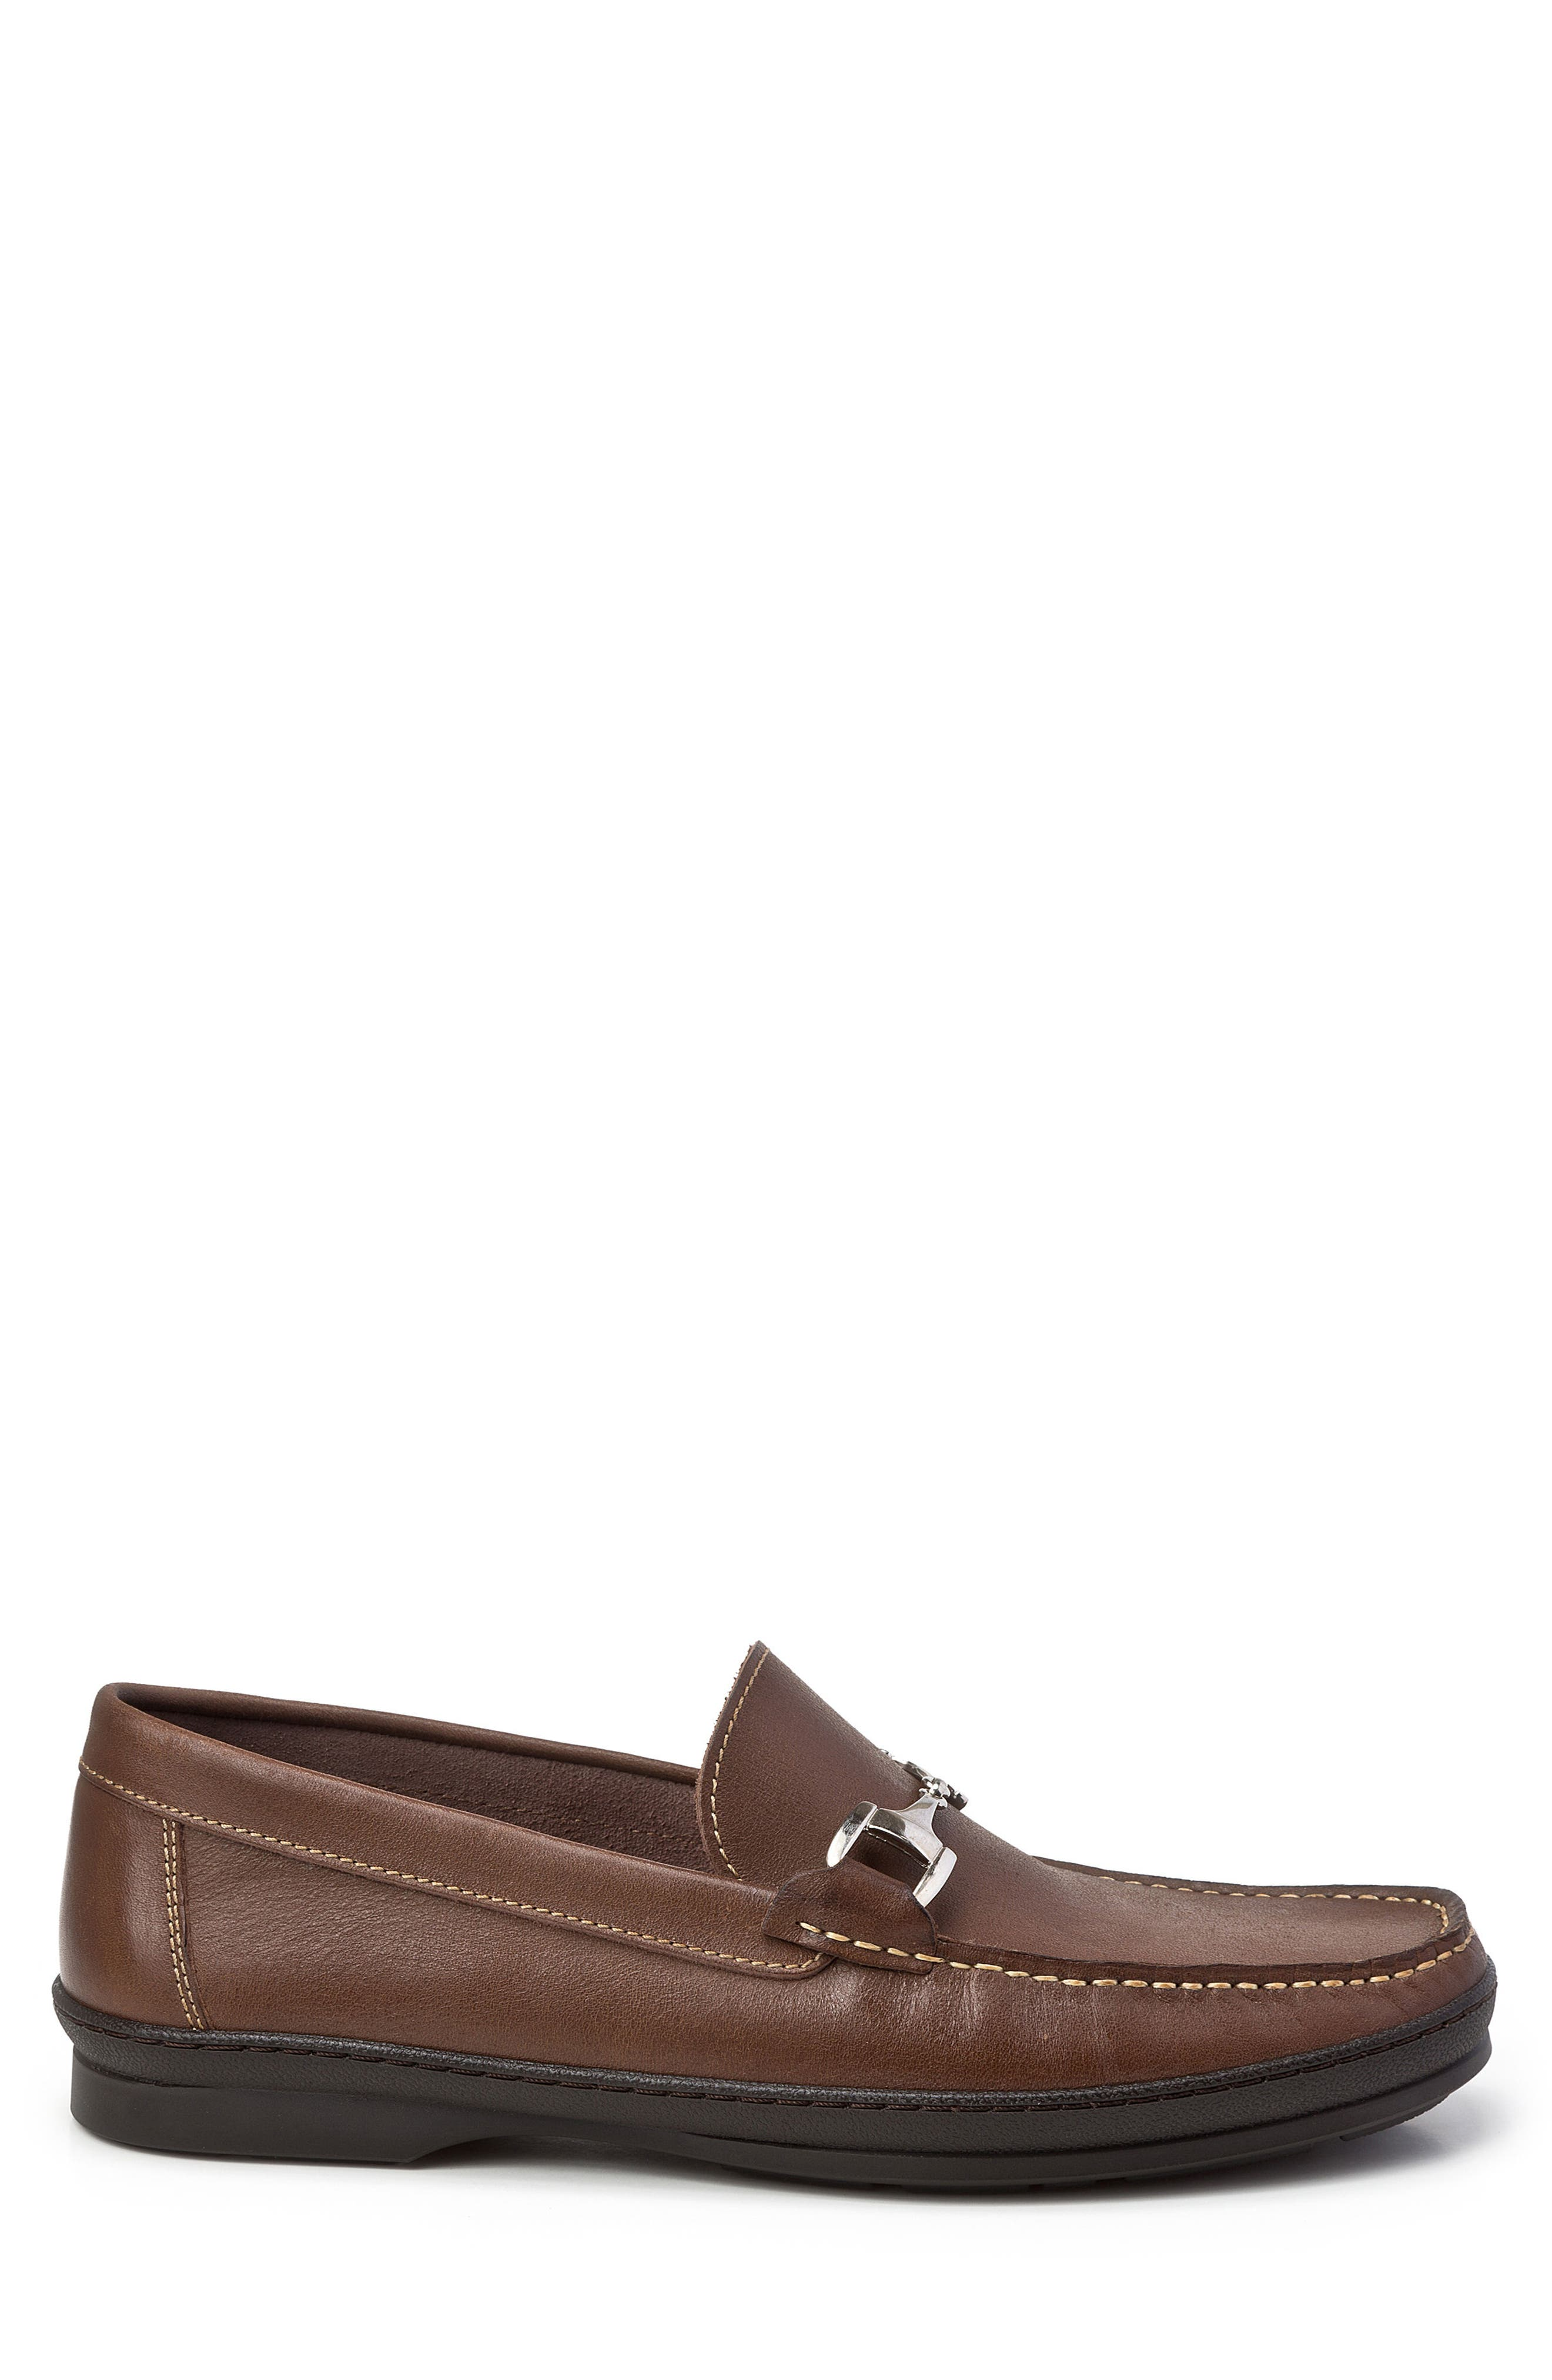 Navarro Bit Loafer,                             Alternate thumbnail 3, color,                             Brown Leather